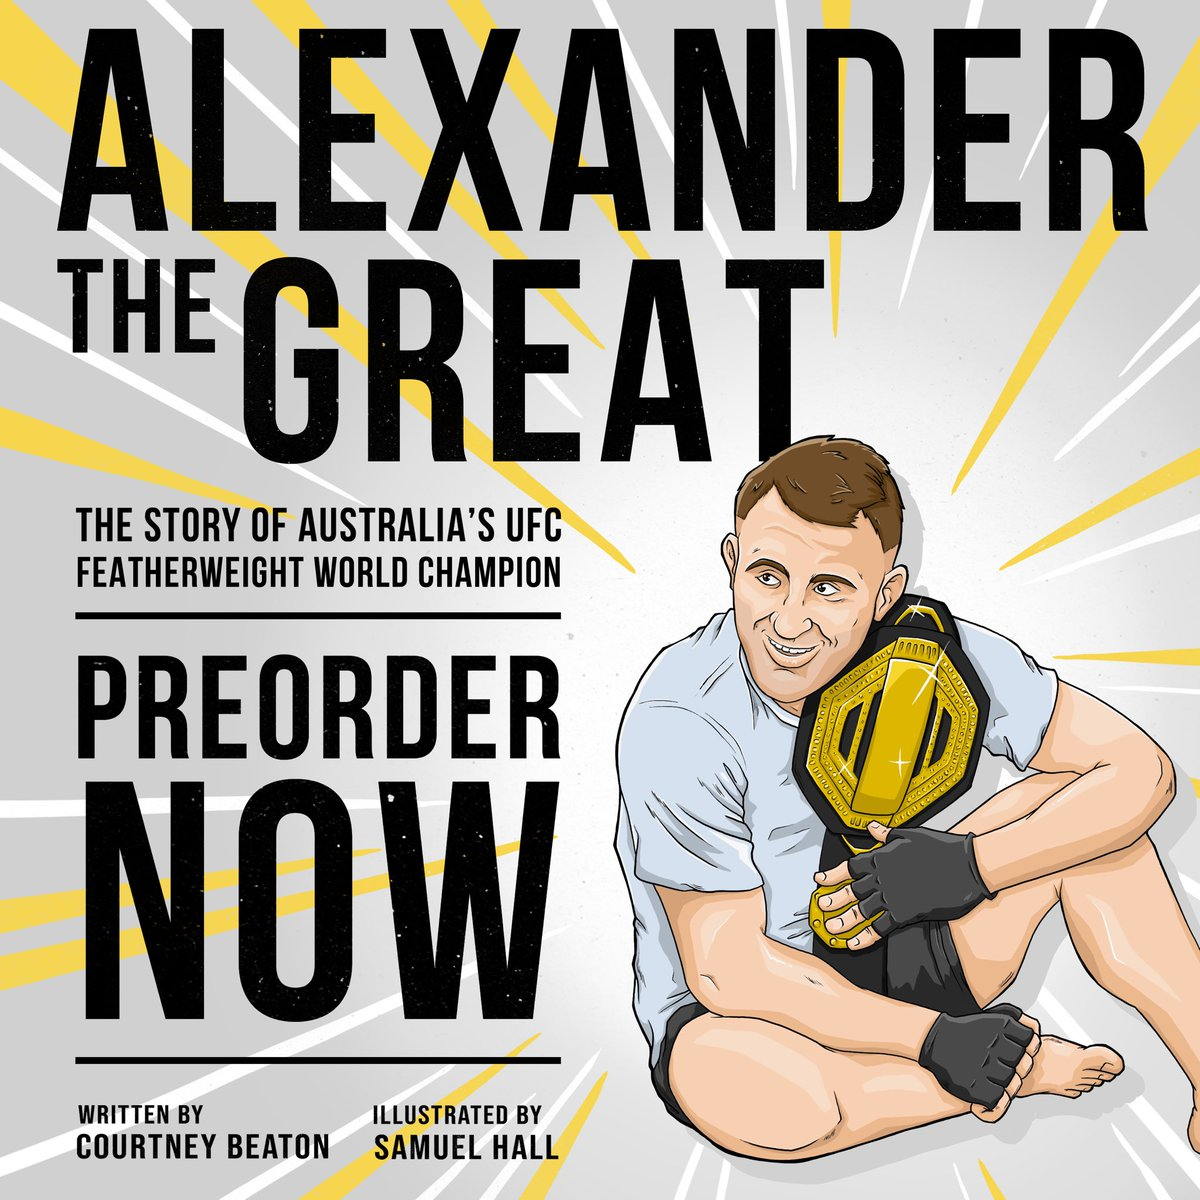 HERE IT IS...your first chance to grab a copy of my new book on pre-sale NOW - https://t.co/LJha4v2nTV  And for all the latest on the book and activities for the kids, check out the Facebook page - https://t.co/cH3P4sWdqQ https://t.co/C7uPEjxHcb